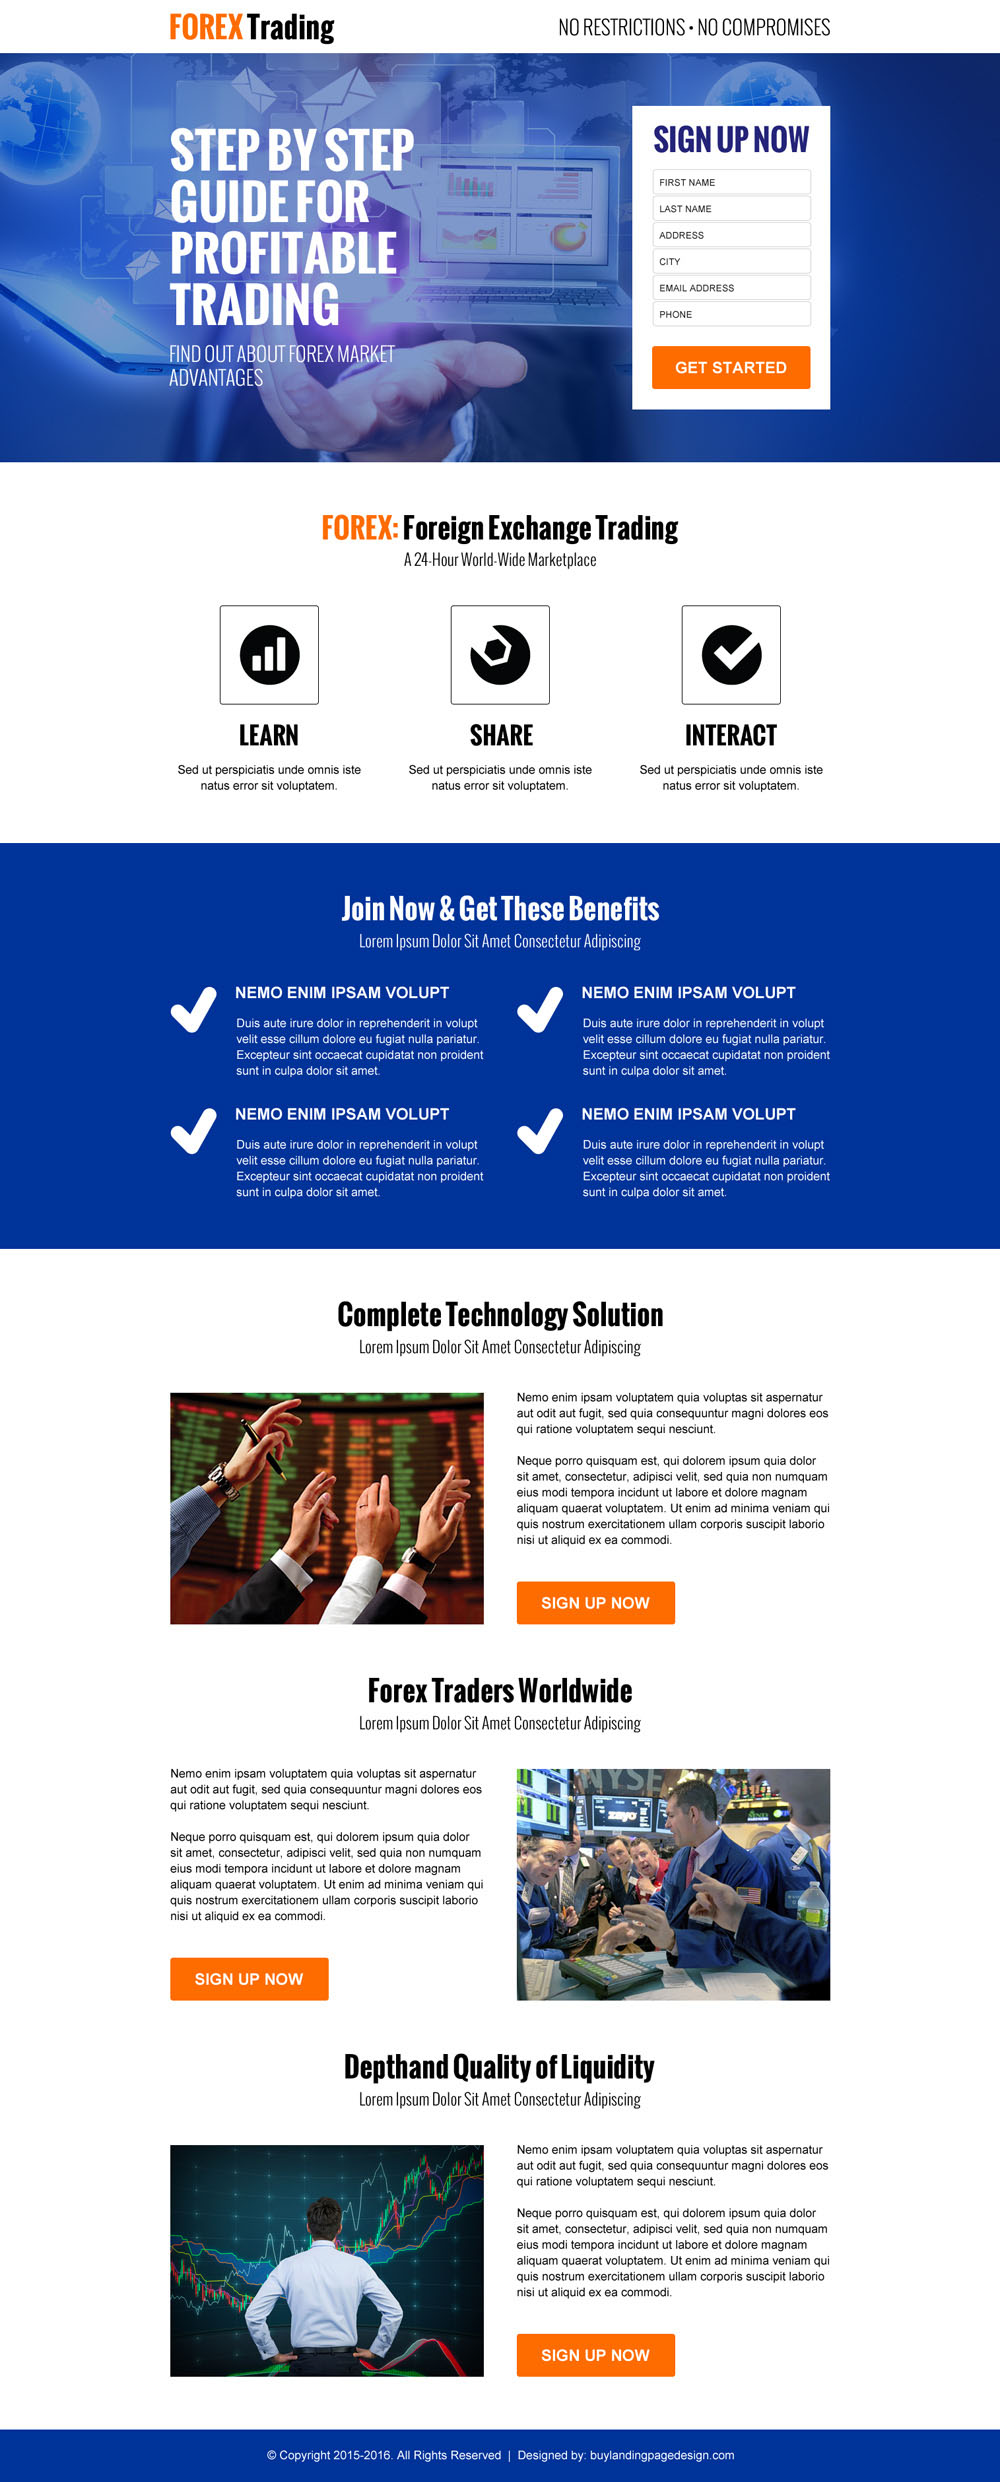 forex-trading-sign-up-lead-generation-business-marketing-responsive-landing-page-design-007